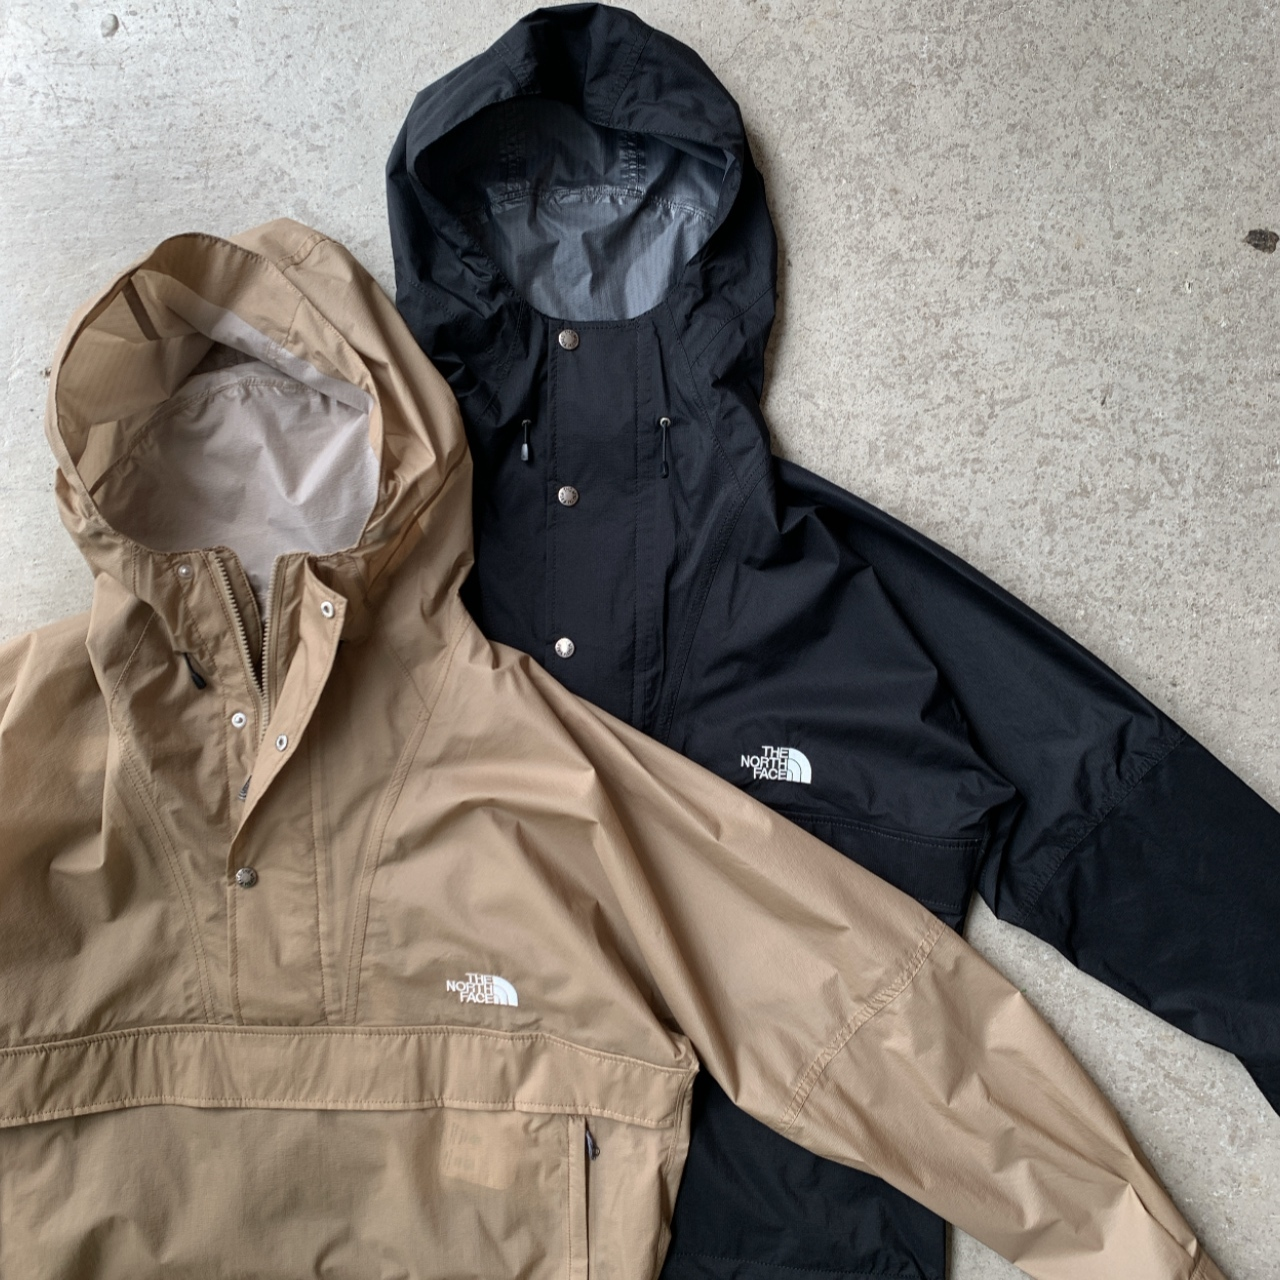 THE NORTH FACE - Windjammer